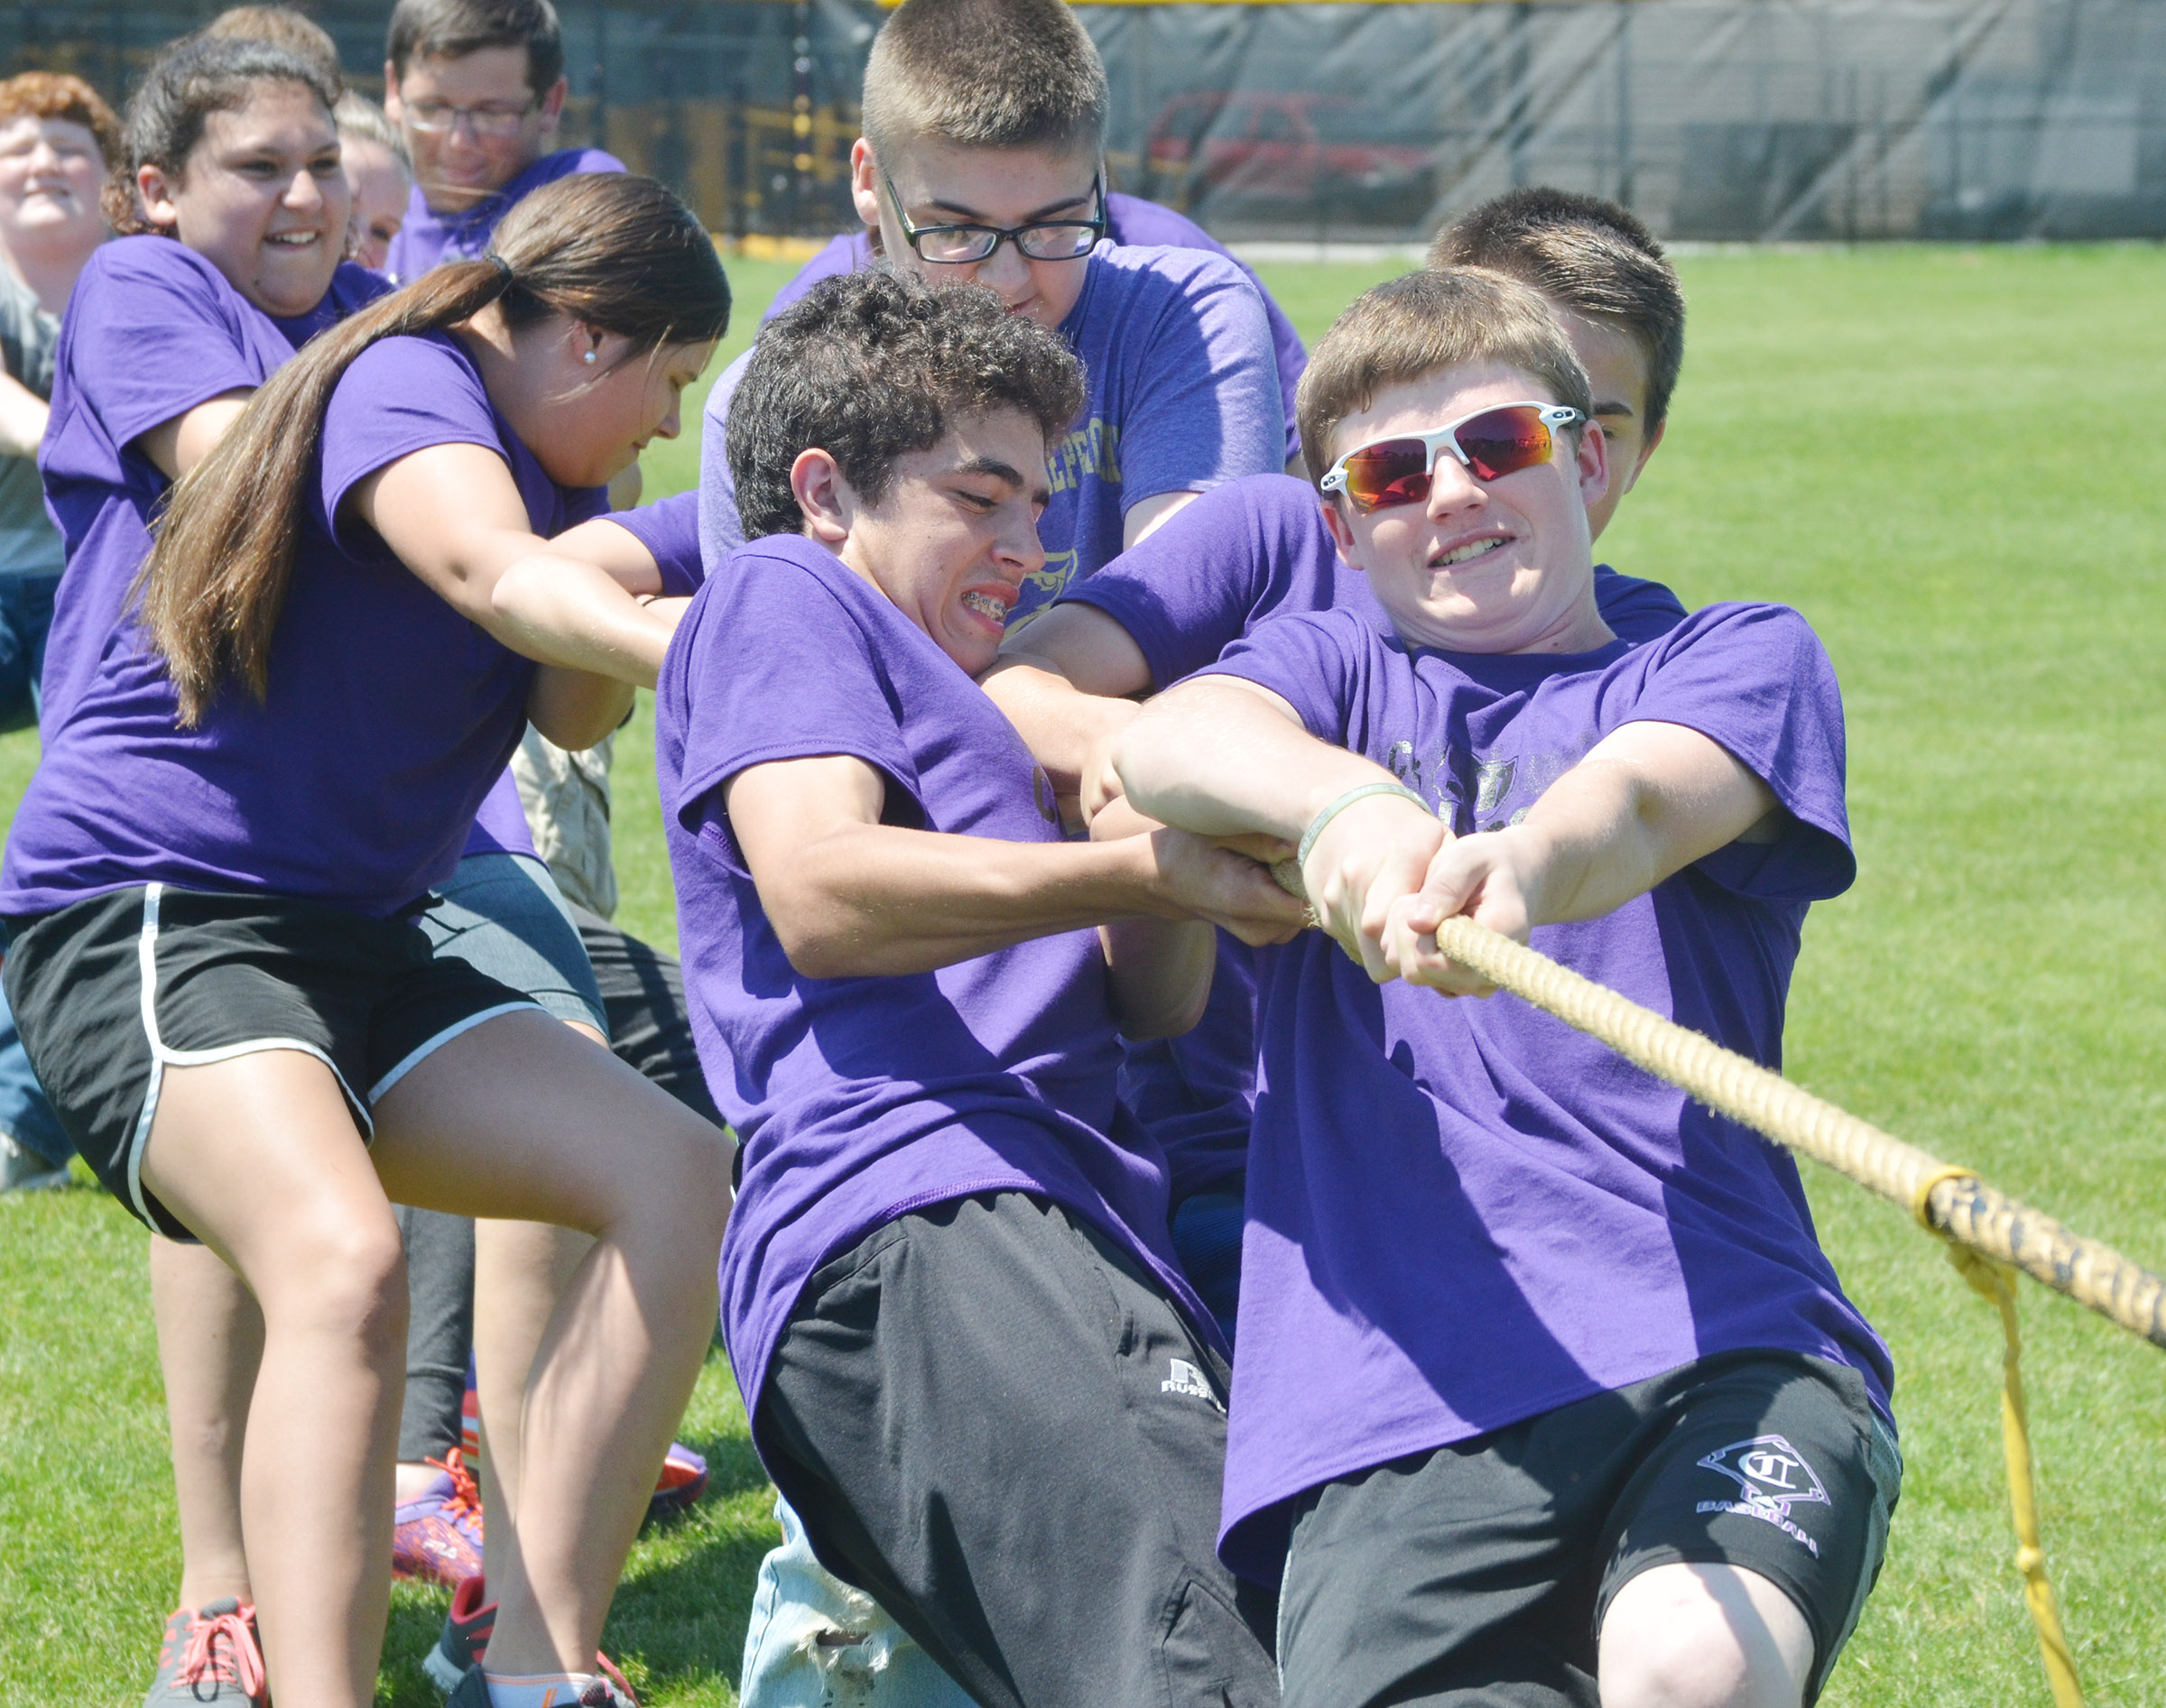 CMS eighth-graders Kameron Smith, at left, and Tristin Faulkner compete with their classmates in the tug of war competition.